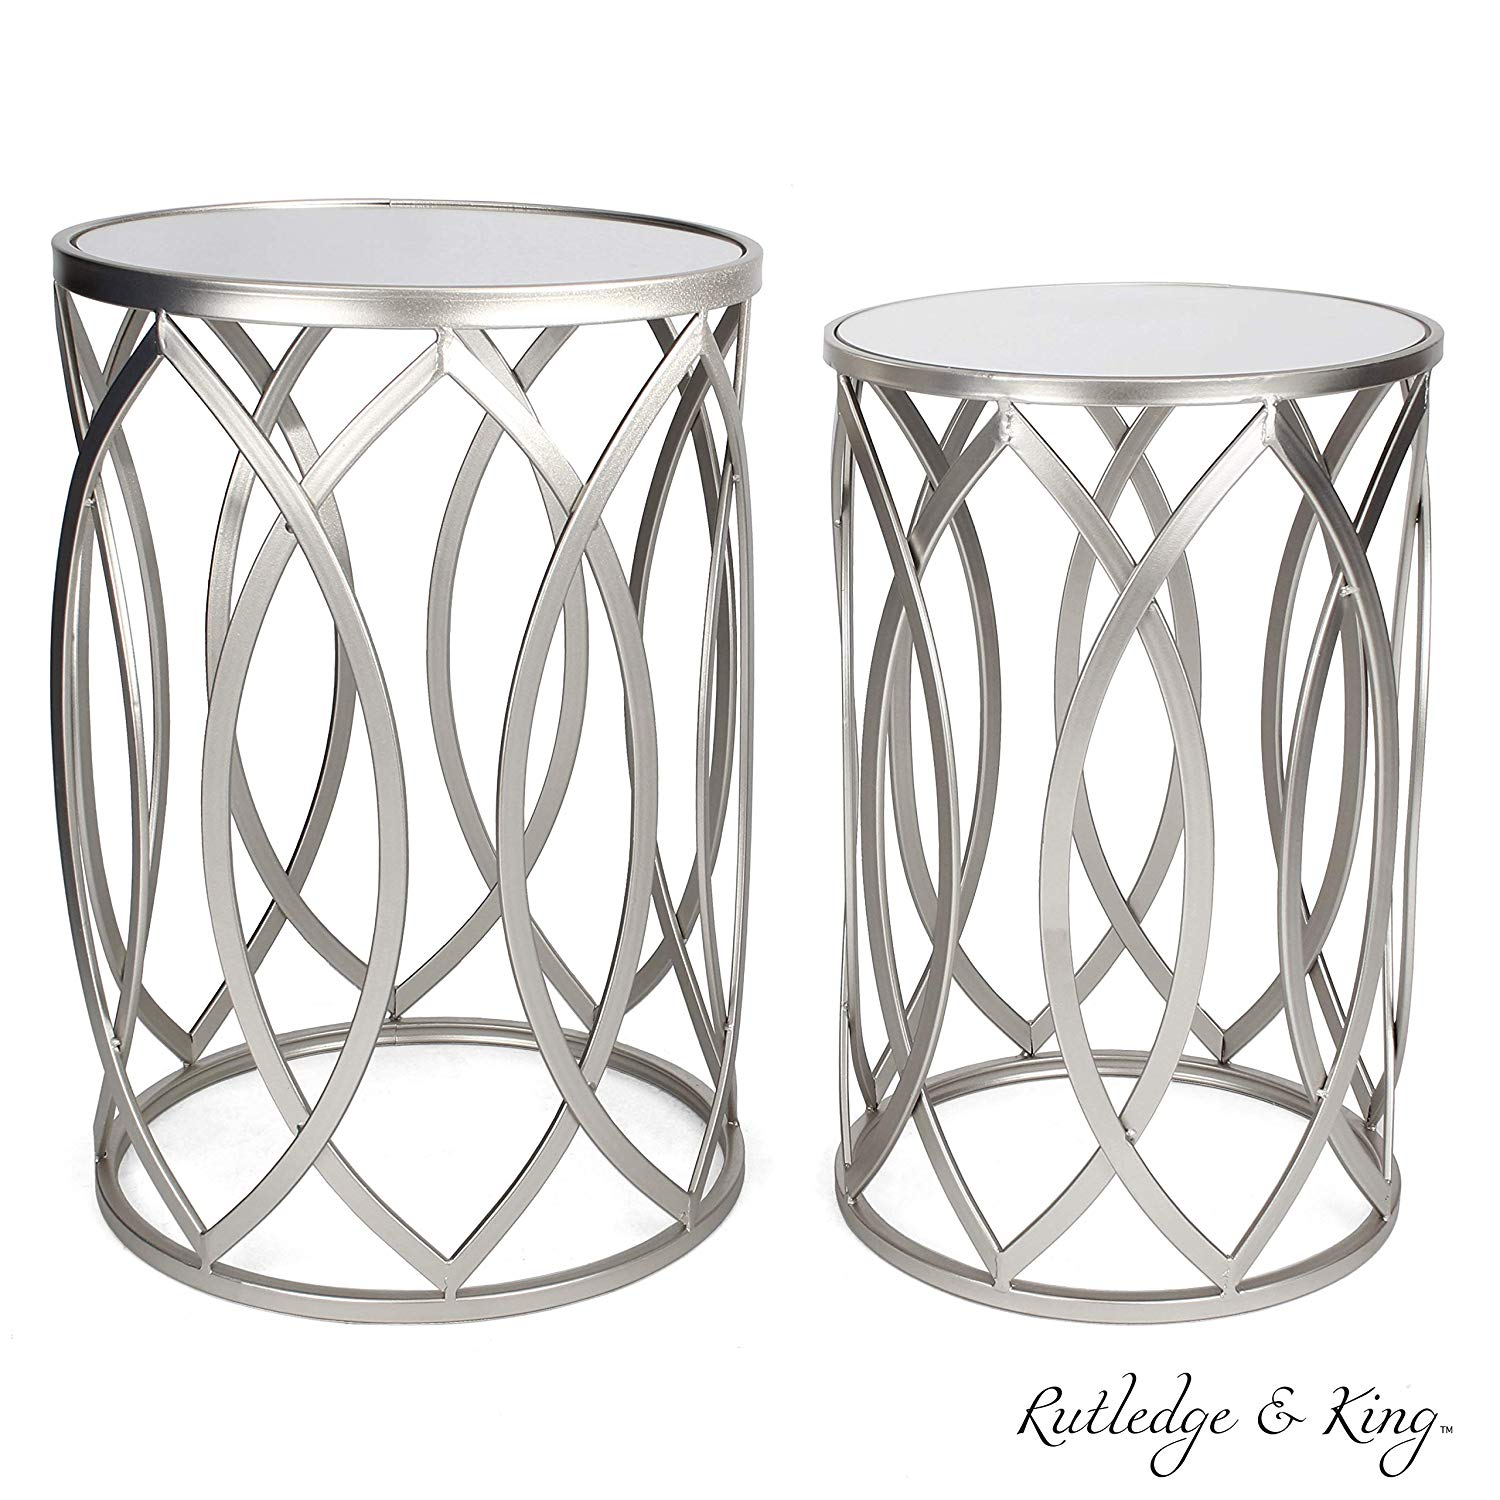 round end table set silver tables with mirrored metal accent glass top tops nesting and side rutledge king blufton ikea bathroom storage gallerie rugs hampton bay pembrey portable